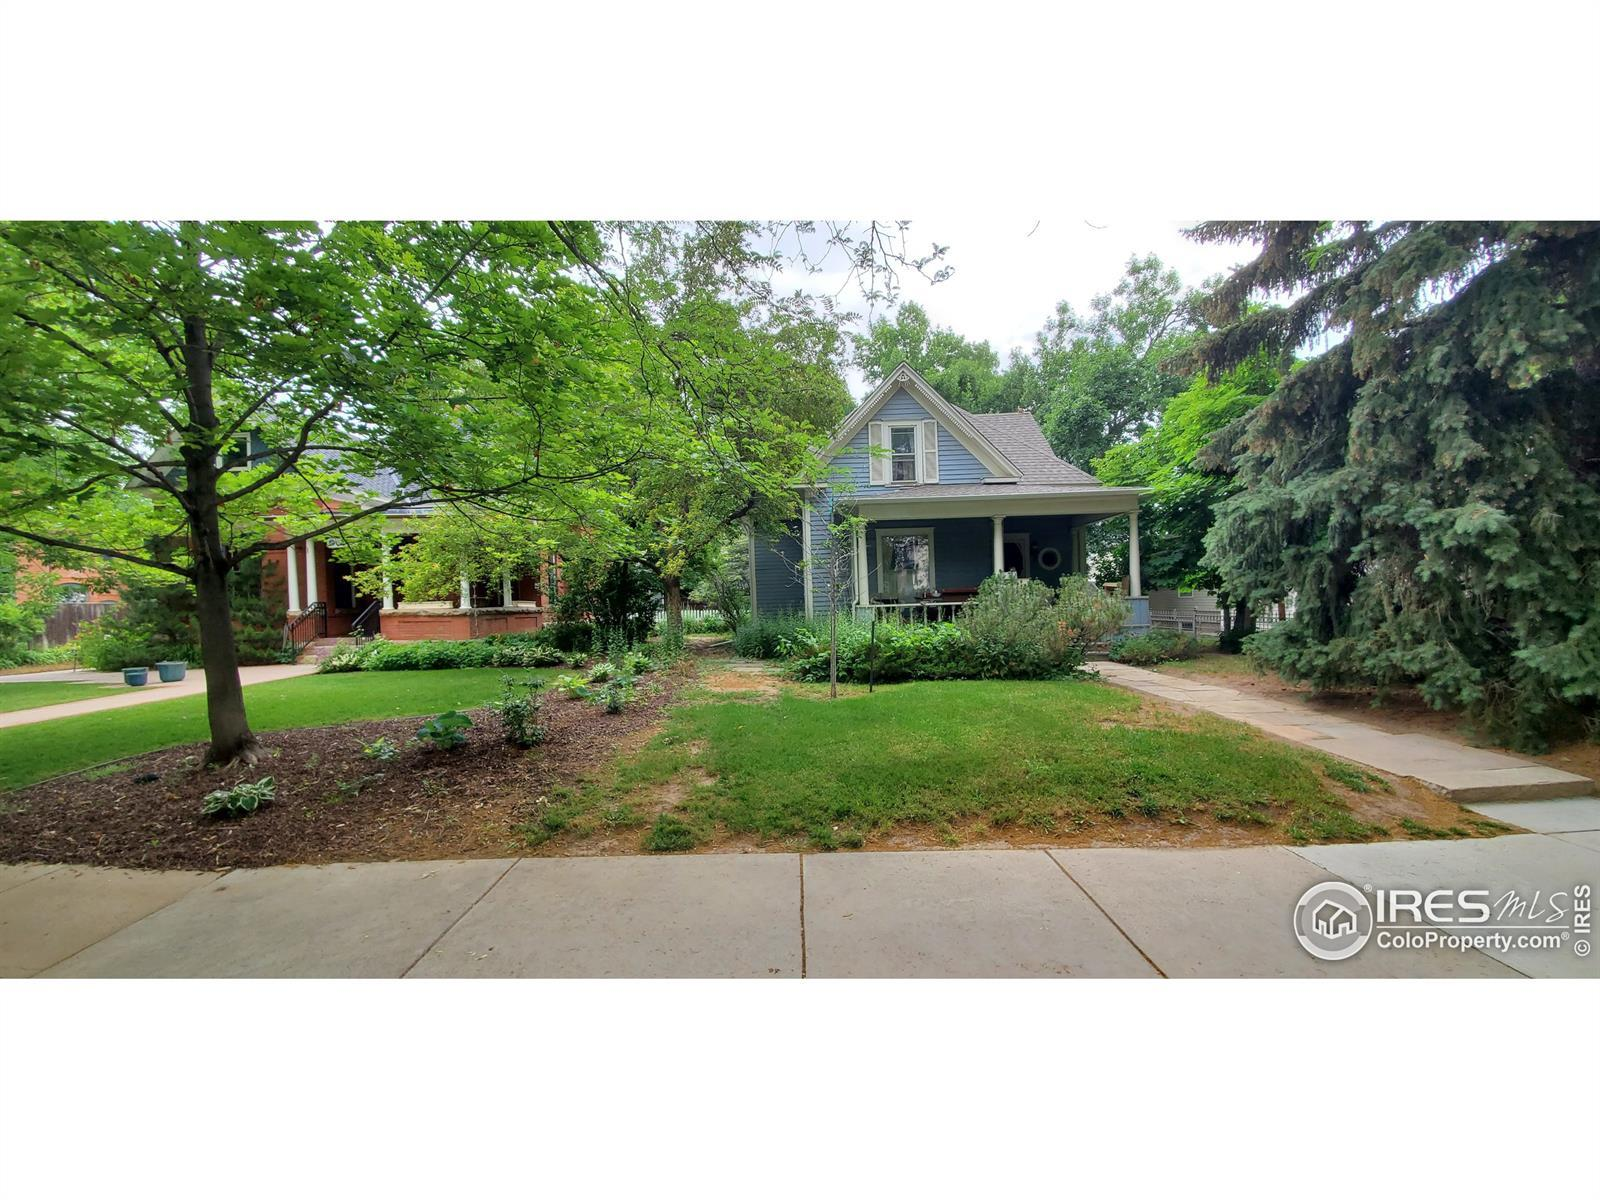 408 W Mountain Avenue, Fort Collins, CO 80521 - #: IR945203